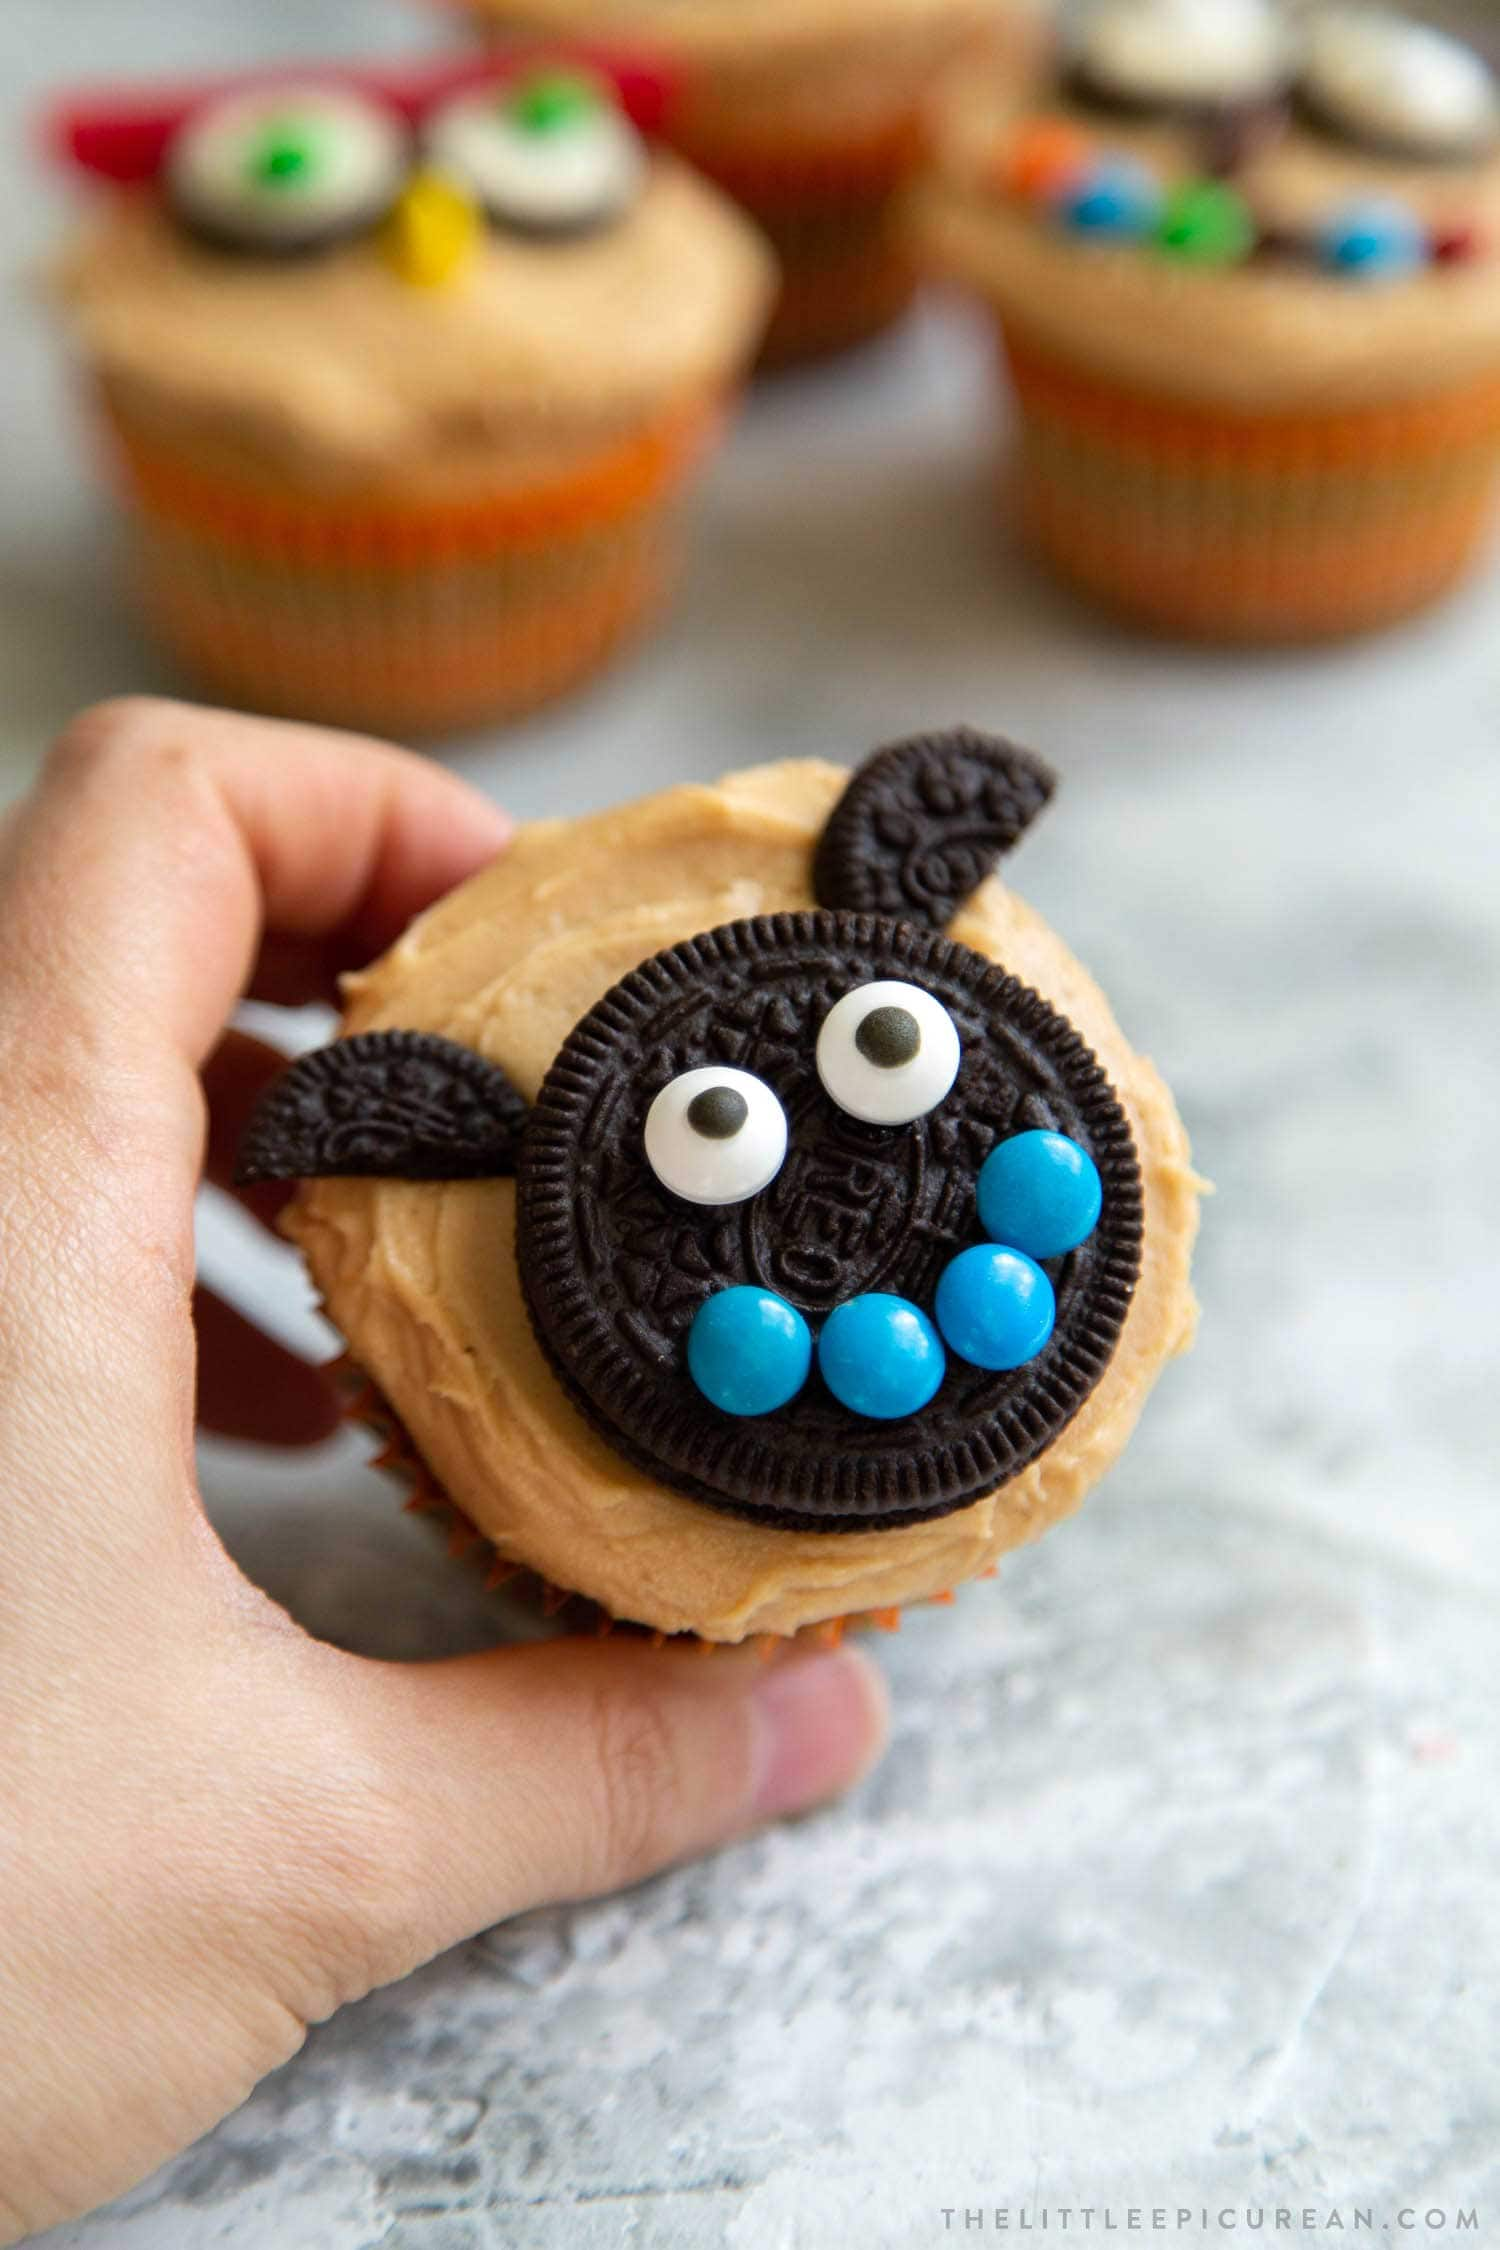 Smiling Bat Halloween Cupcakes. Easy to decorate Halloween cupcakes using store-bought candies. This post contains 10 decor ideas!